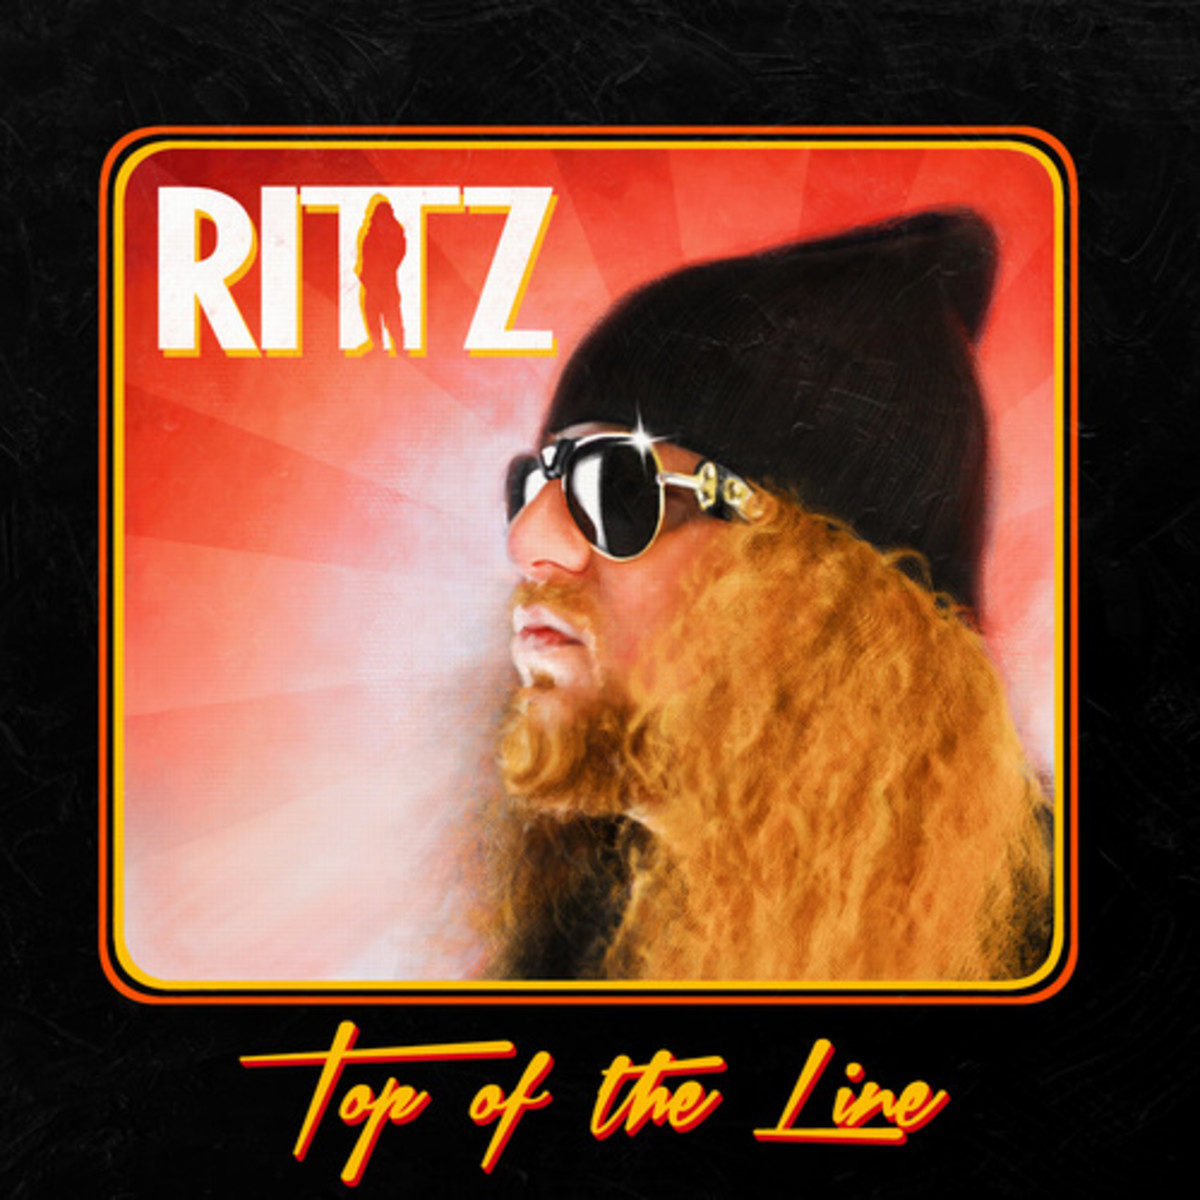 rittz-top-of-the-line-1.jpg